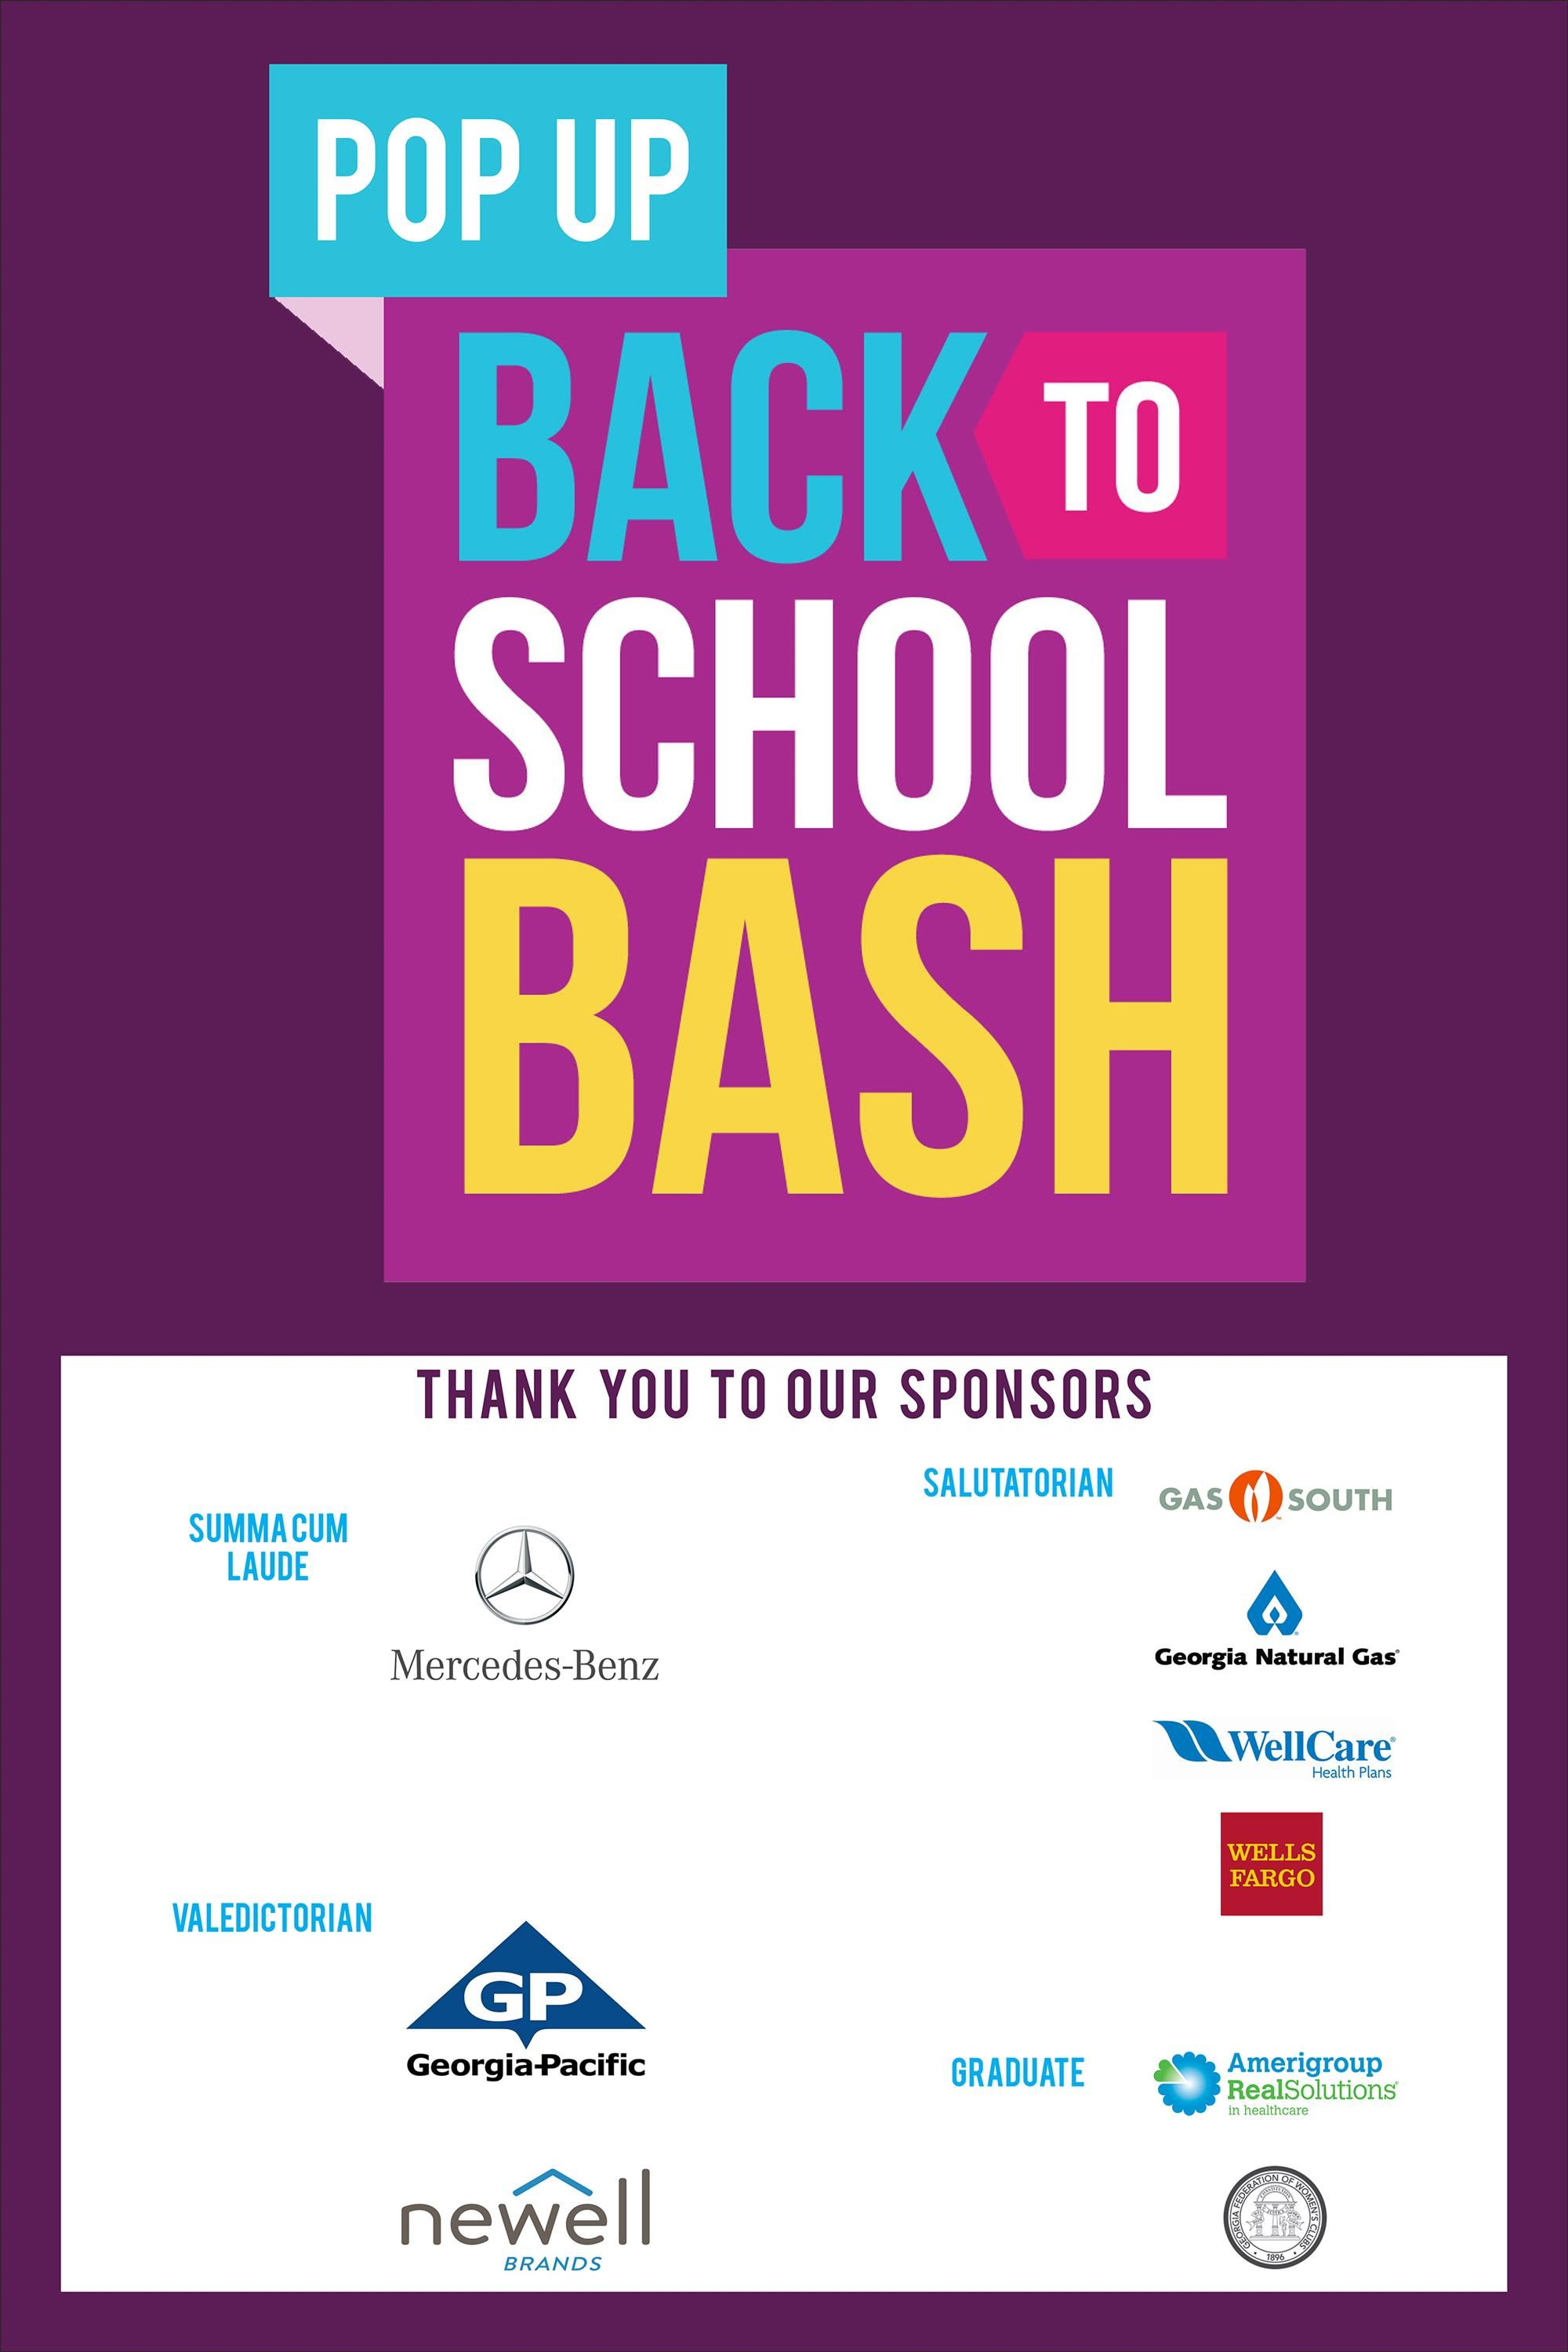 Back to School Bash Sponsors